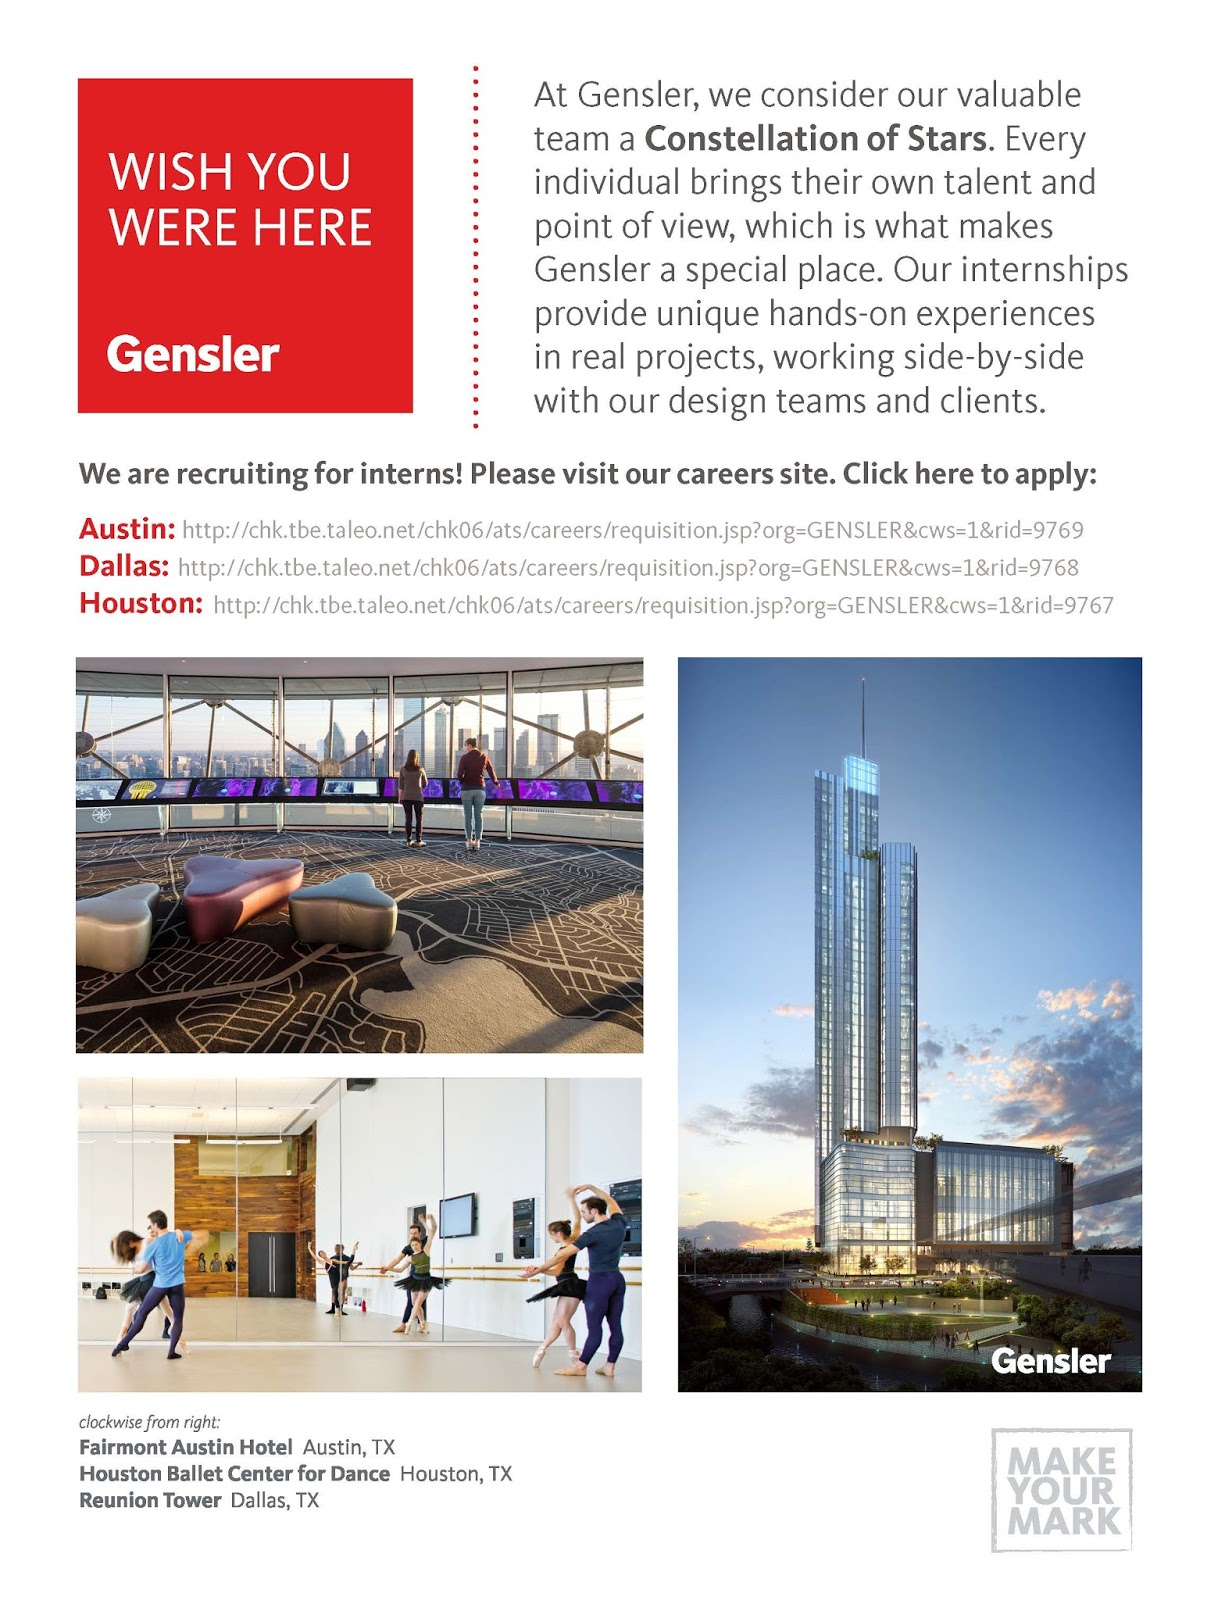 Gensler Internships Provide Unique Hands On Experiences In Real Projects Working Side By With Design Teams And Clients To Apply Please Visit